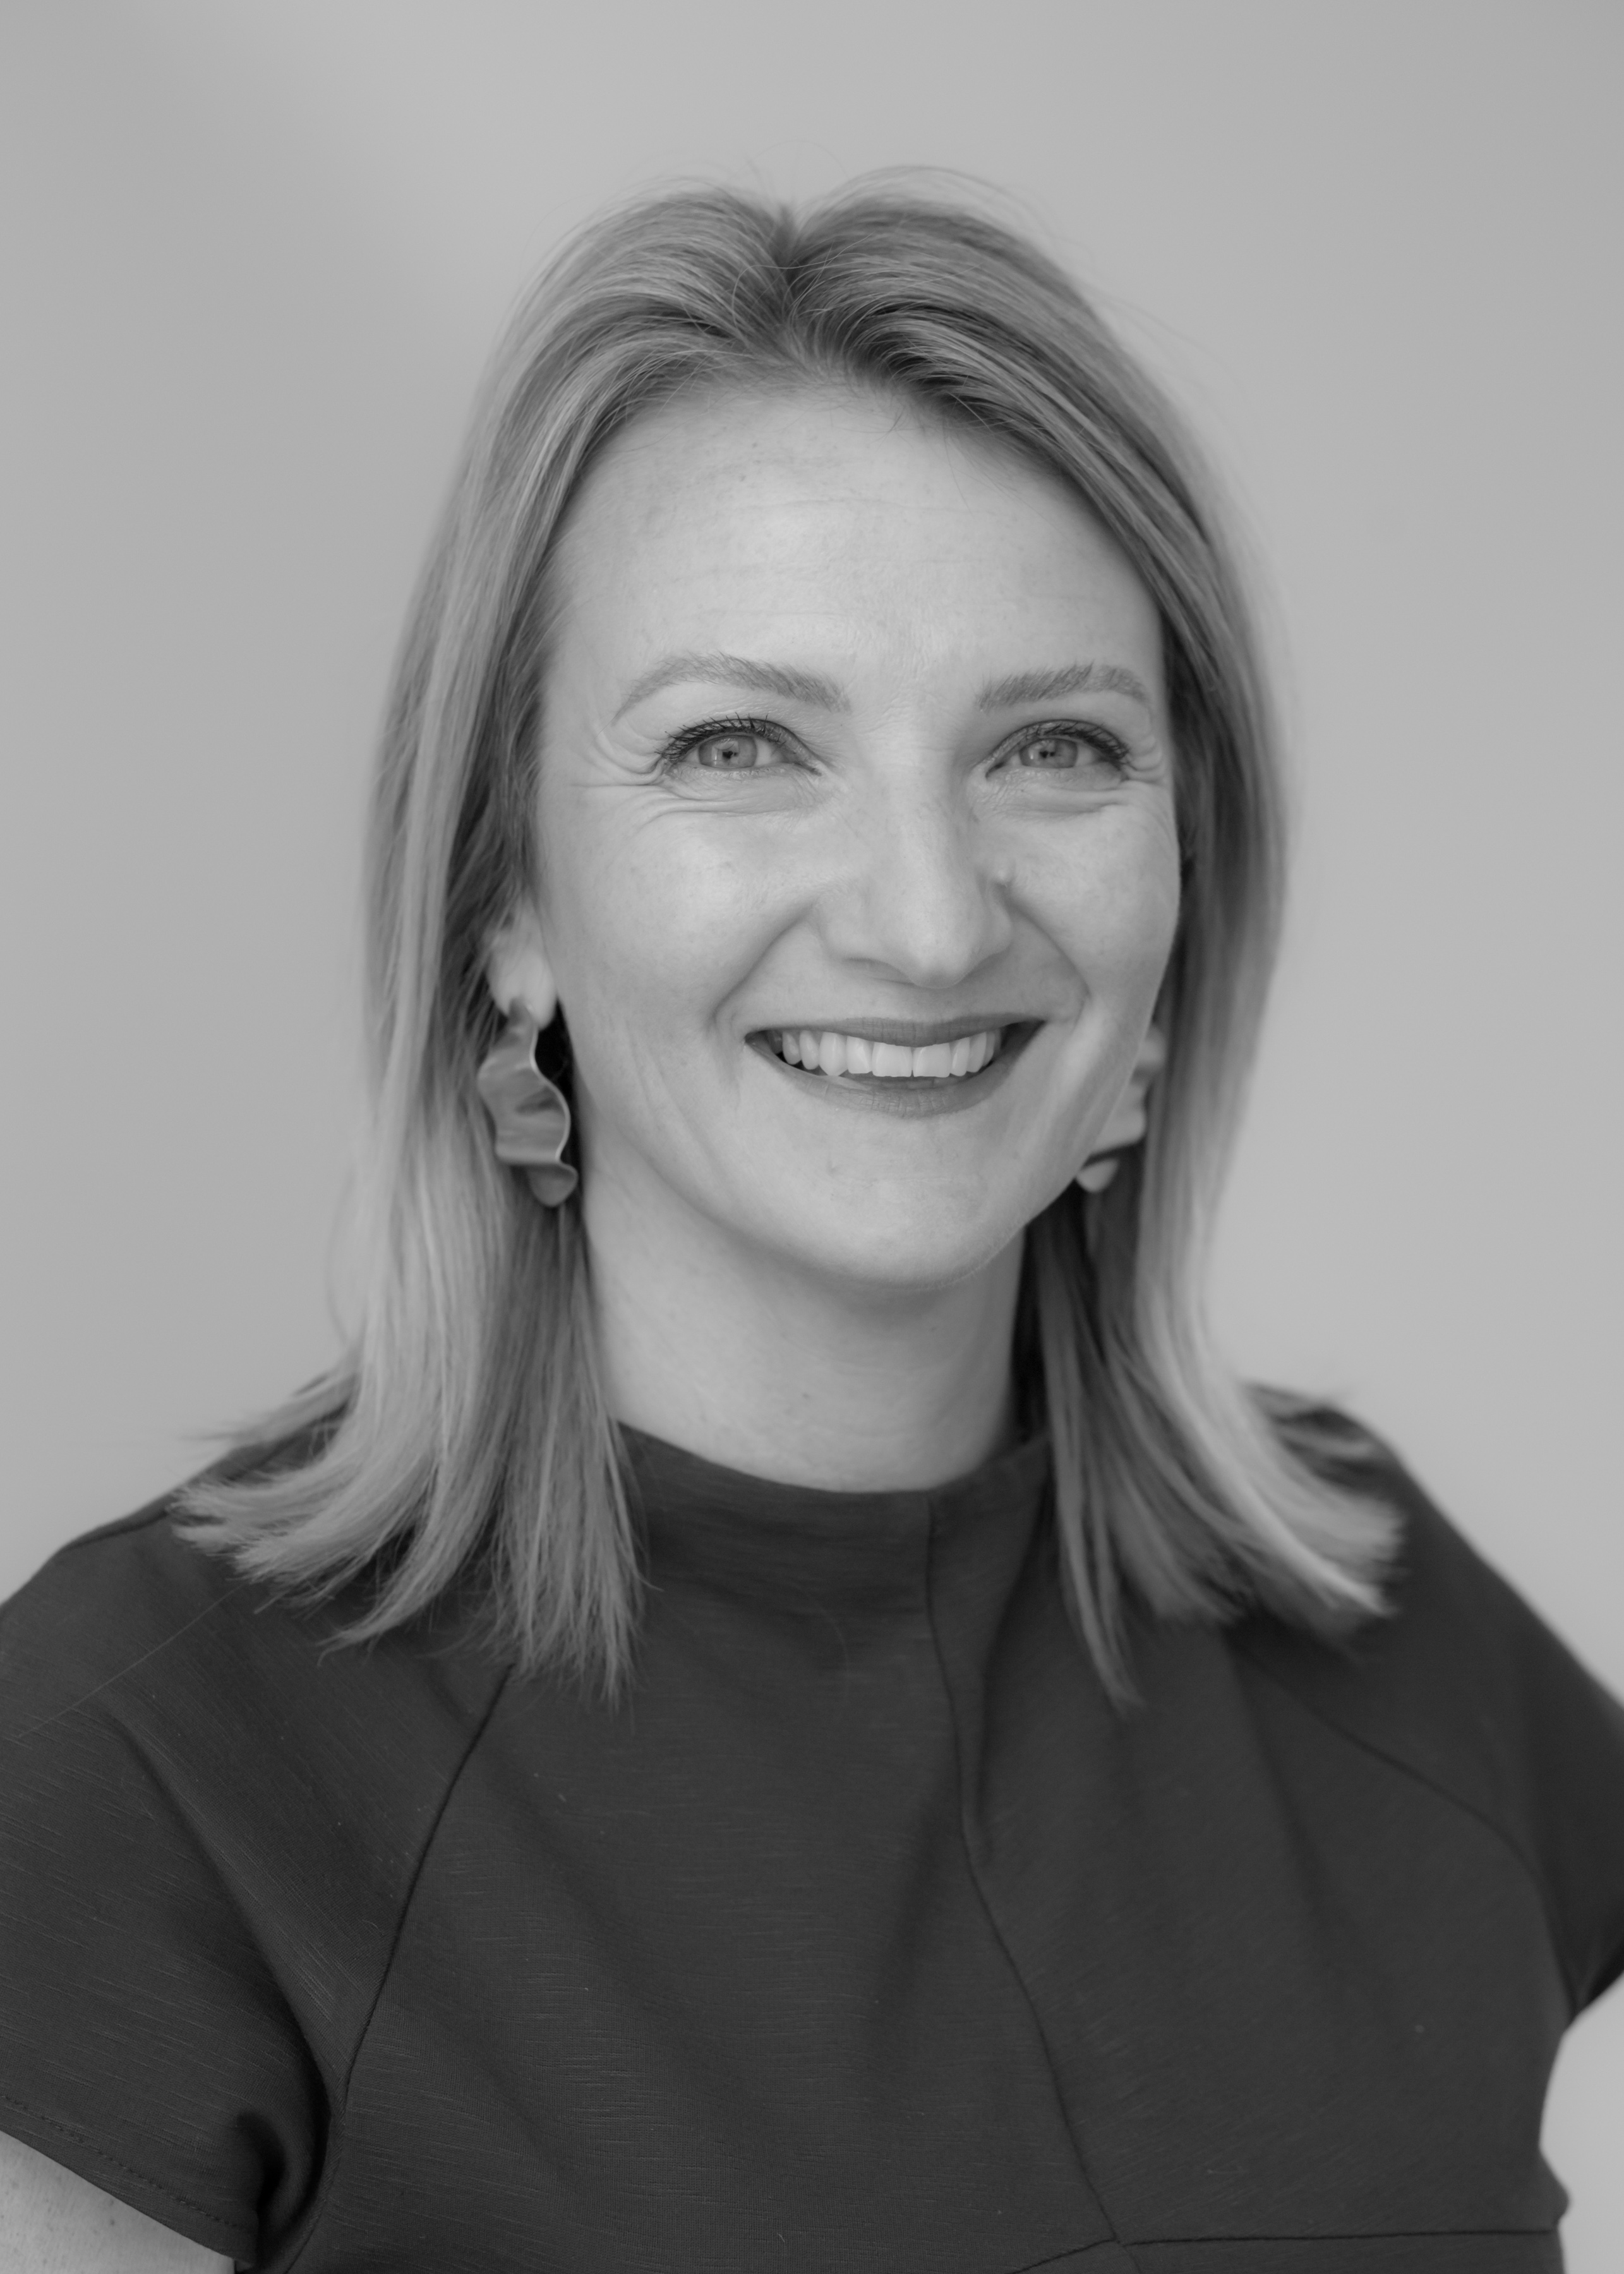 A black and white image of Andrea McKay, one of the financial advisers at Ethical Investment Services.